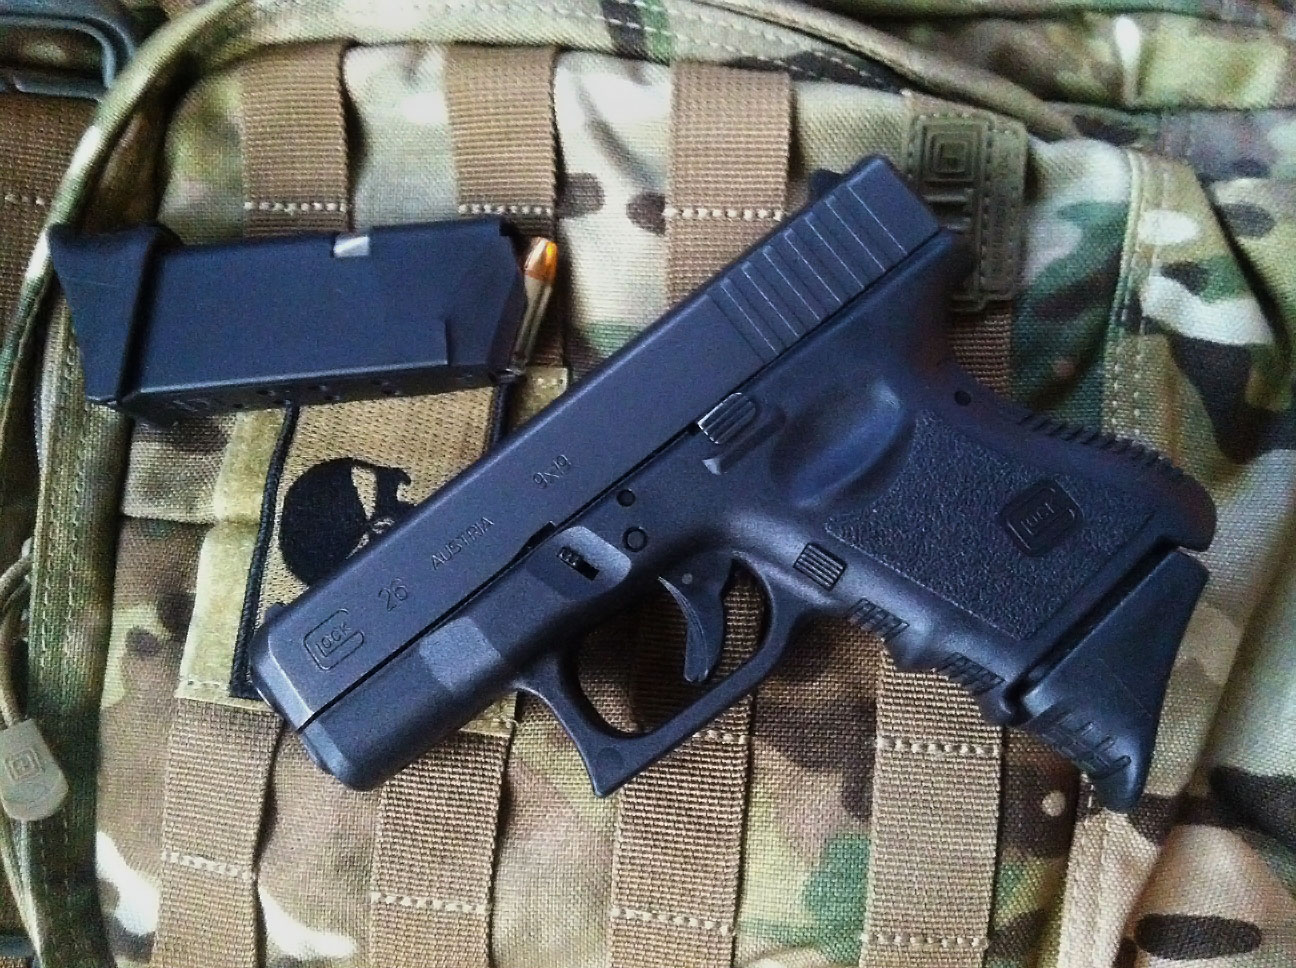 My Appreciation Day Glock 26-glock26.jpg